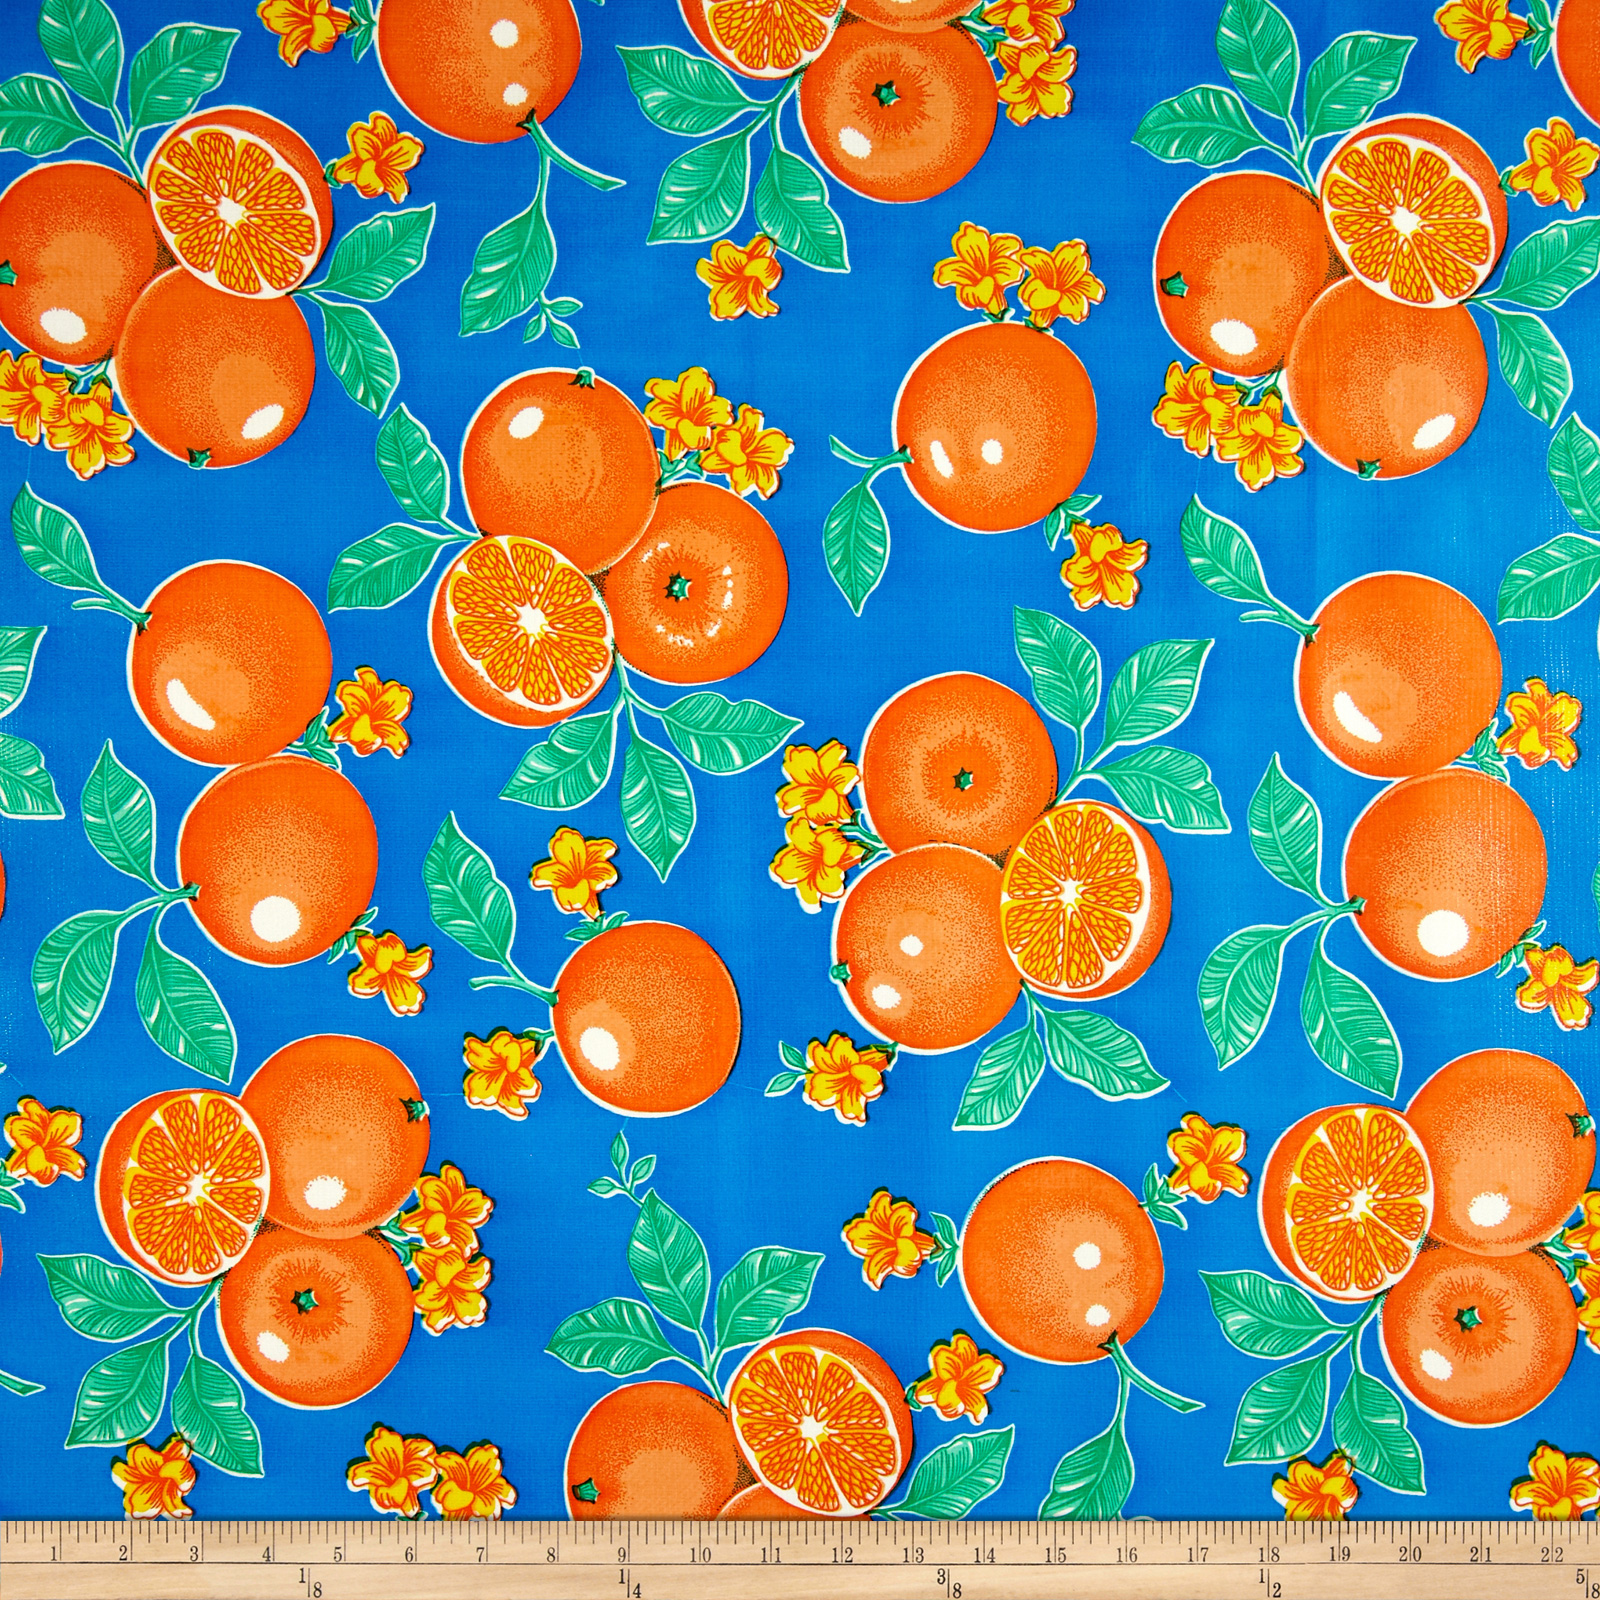 Oil Cloth Oranges Blue Fabric